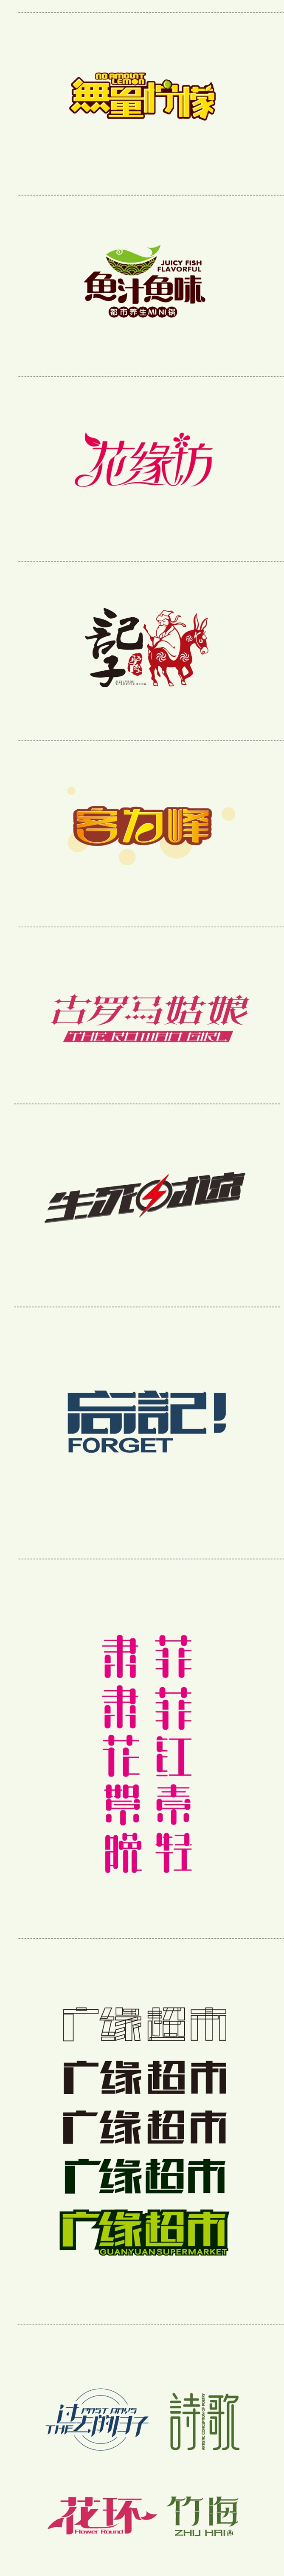 chinesefontdesign.com 2016 07 13 08 01 01 90+  Intricate Chinese Font Logos Style Design For Your Creative Design